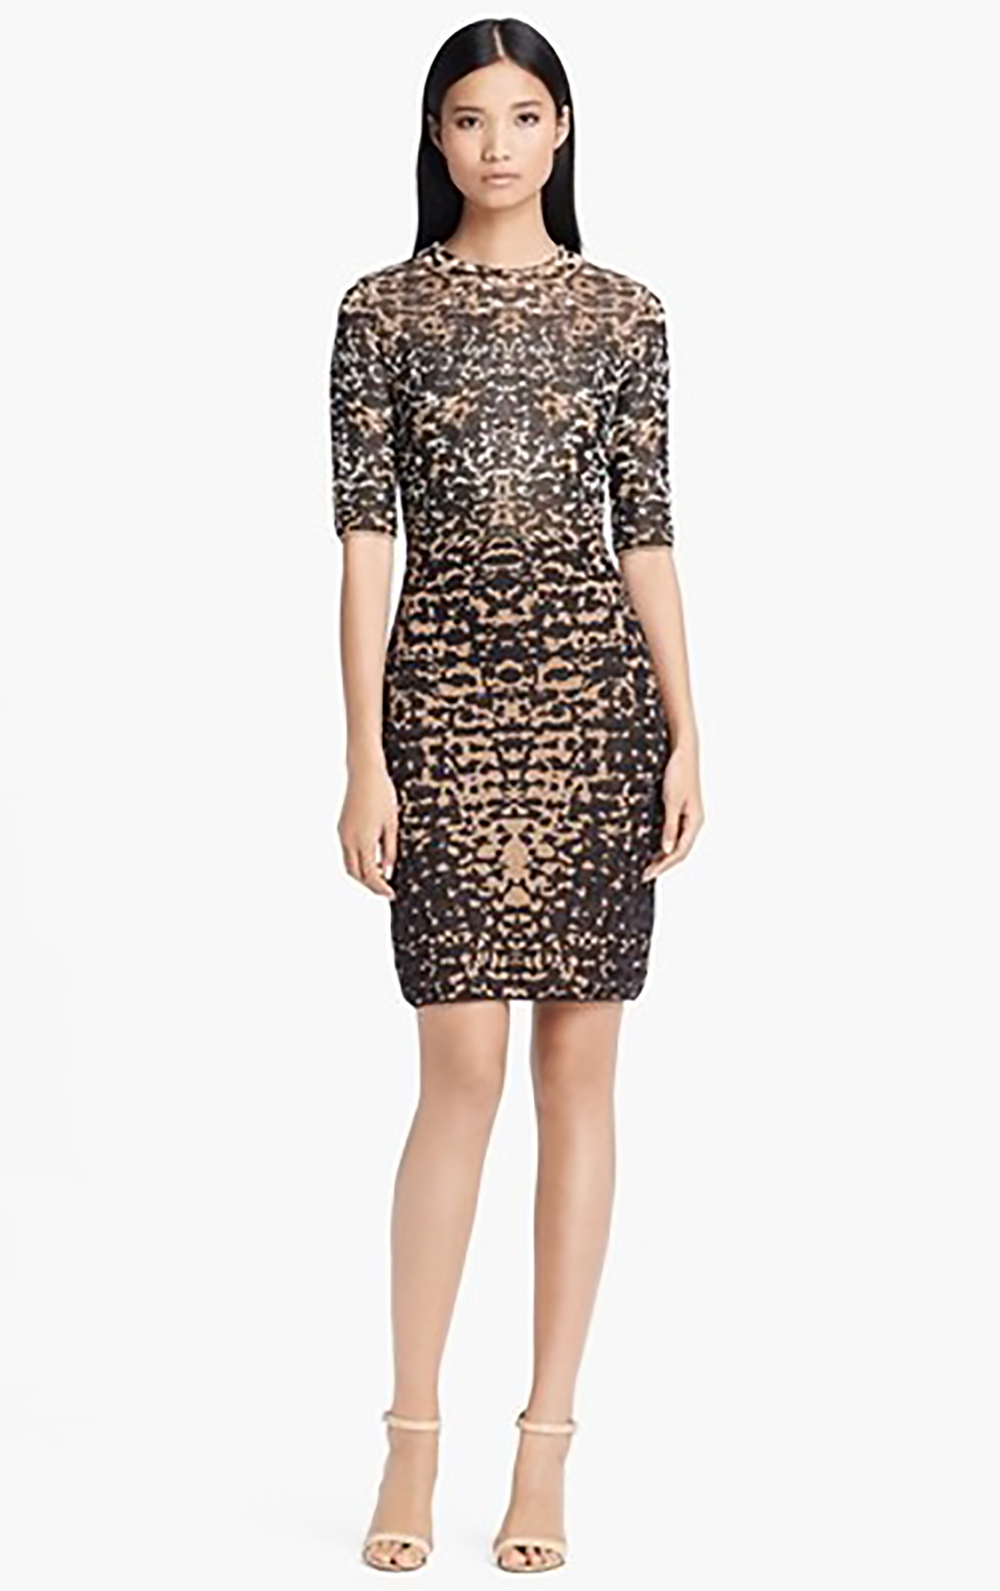 nordstrom M Missoni Lizard jacquard dress holiday party 1500.jpg